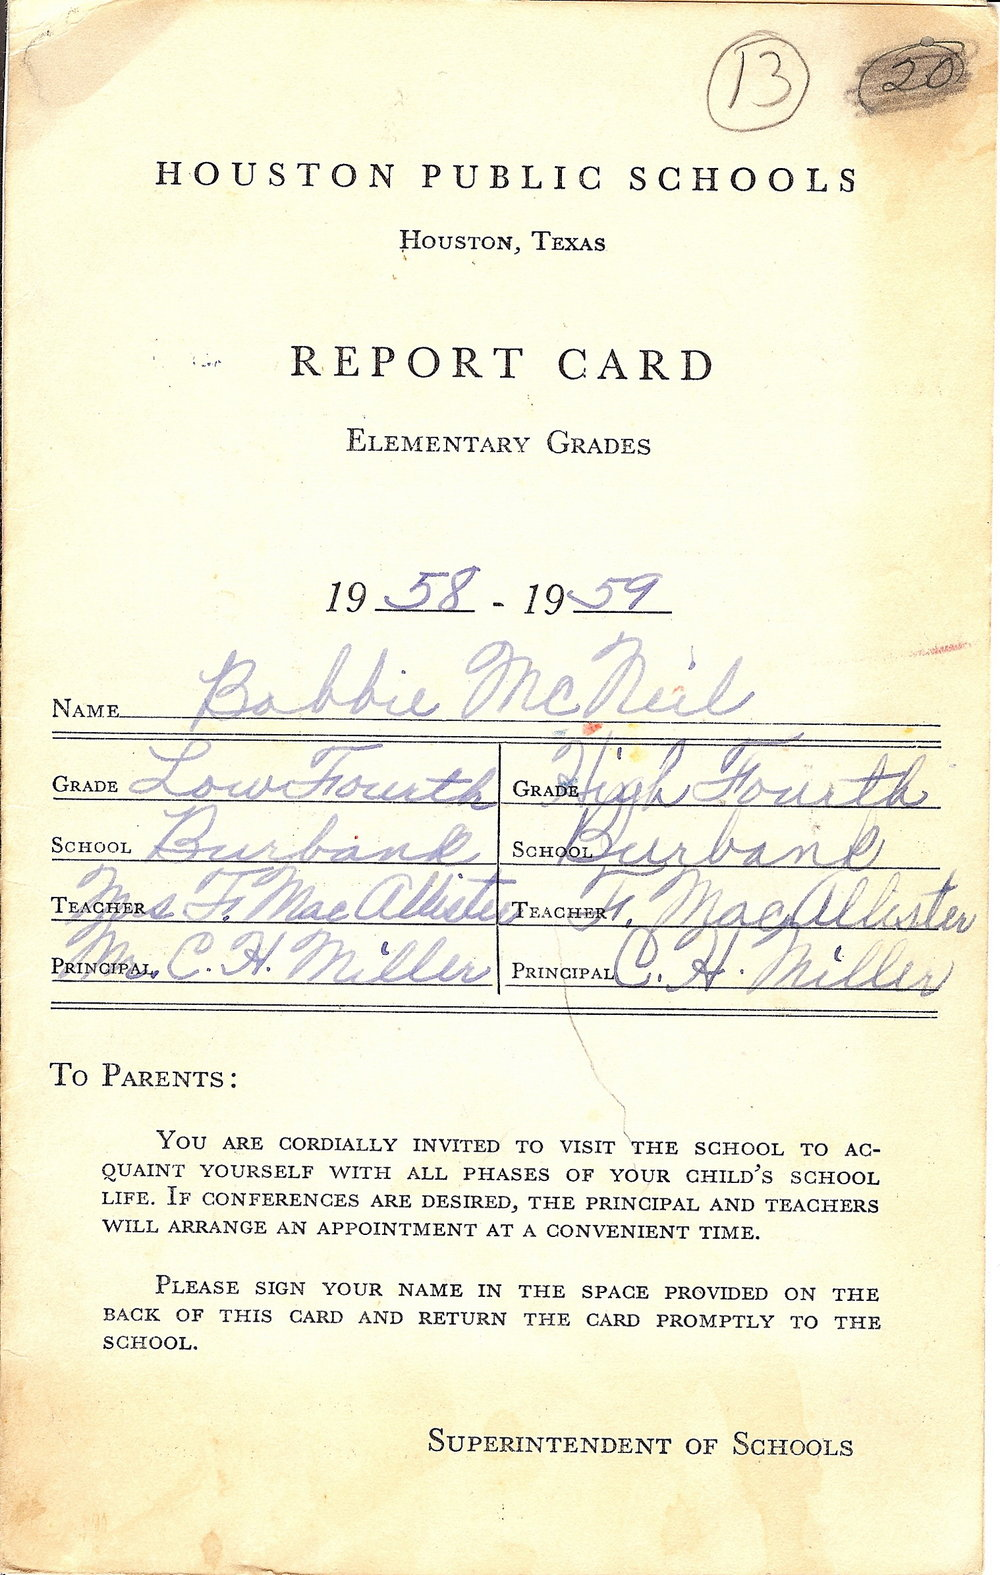 Life of bob bob mcneil for us senator from texas bob mcneil 1958 age 9 fourth grade report card page 1 aiddatafo Gallery